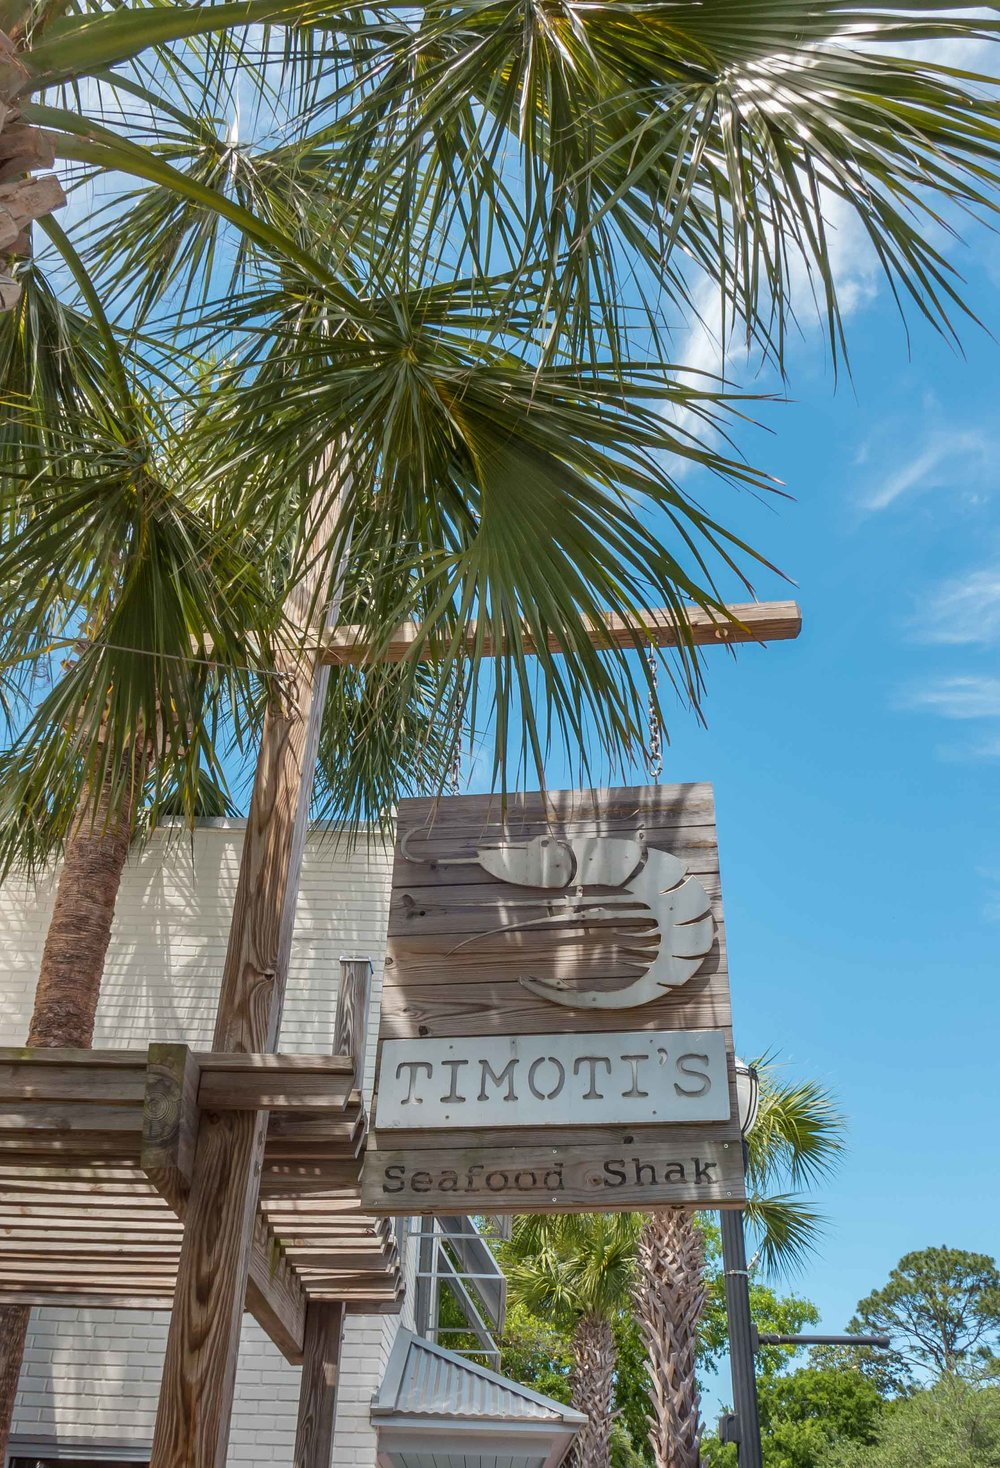 We had rented a car which made it easy to leave the resort in search of food. Fernandina Beach is about a 20 minute car ride from the resort. For lunch one day, we ventured out to  Timoti's Seafood Shak .